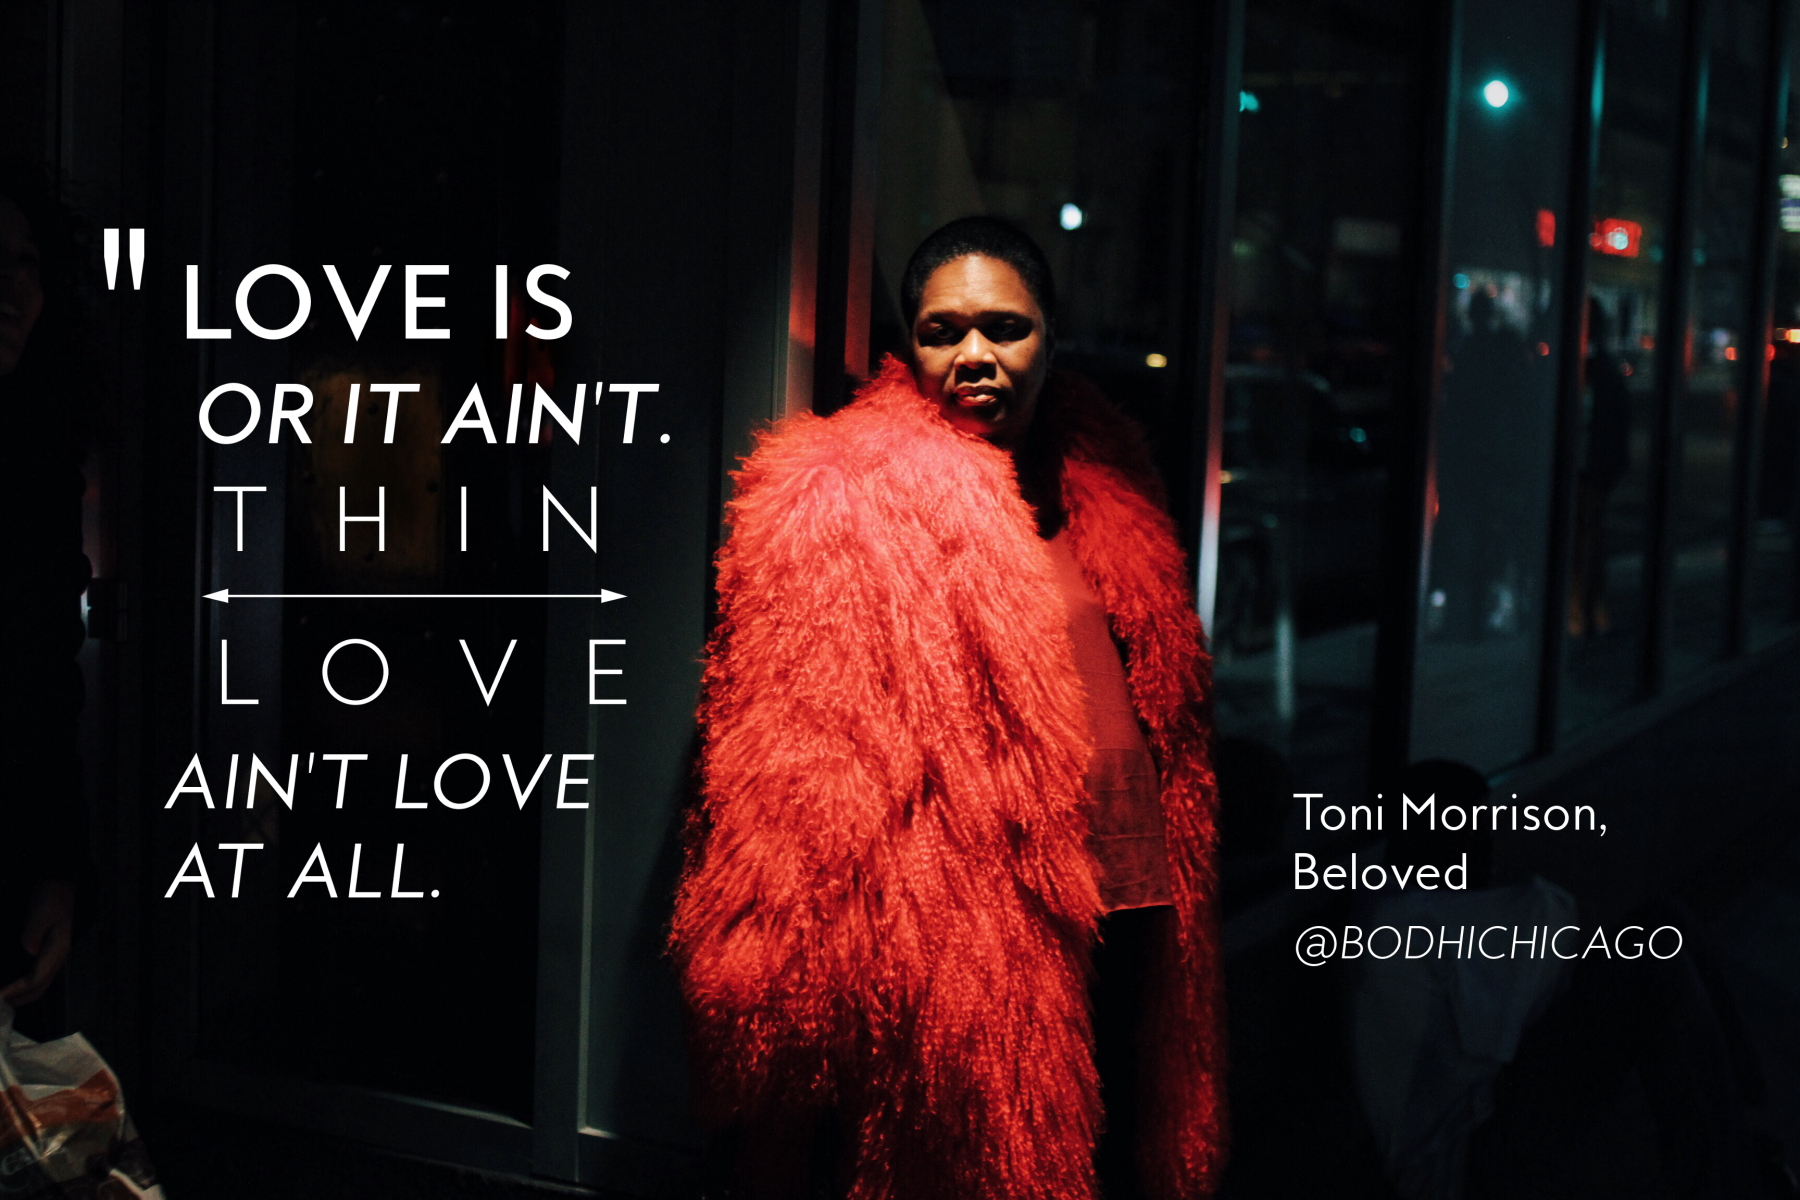 Black History Month Quotes Wednesday Wisdom Quote Toni Morrison On What Love Is  Bodhi